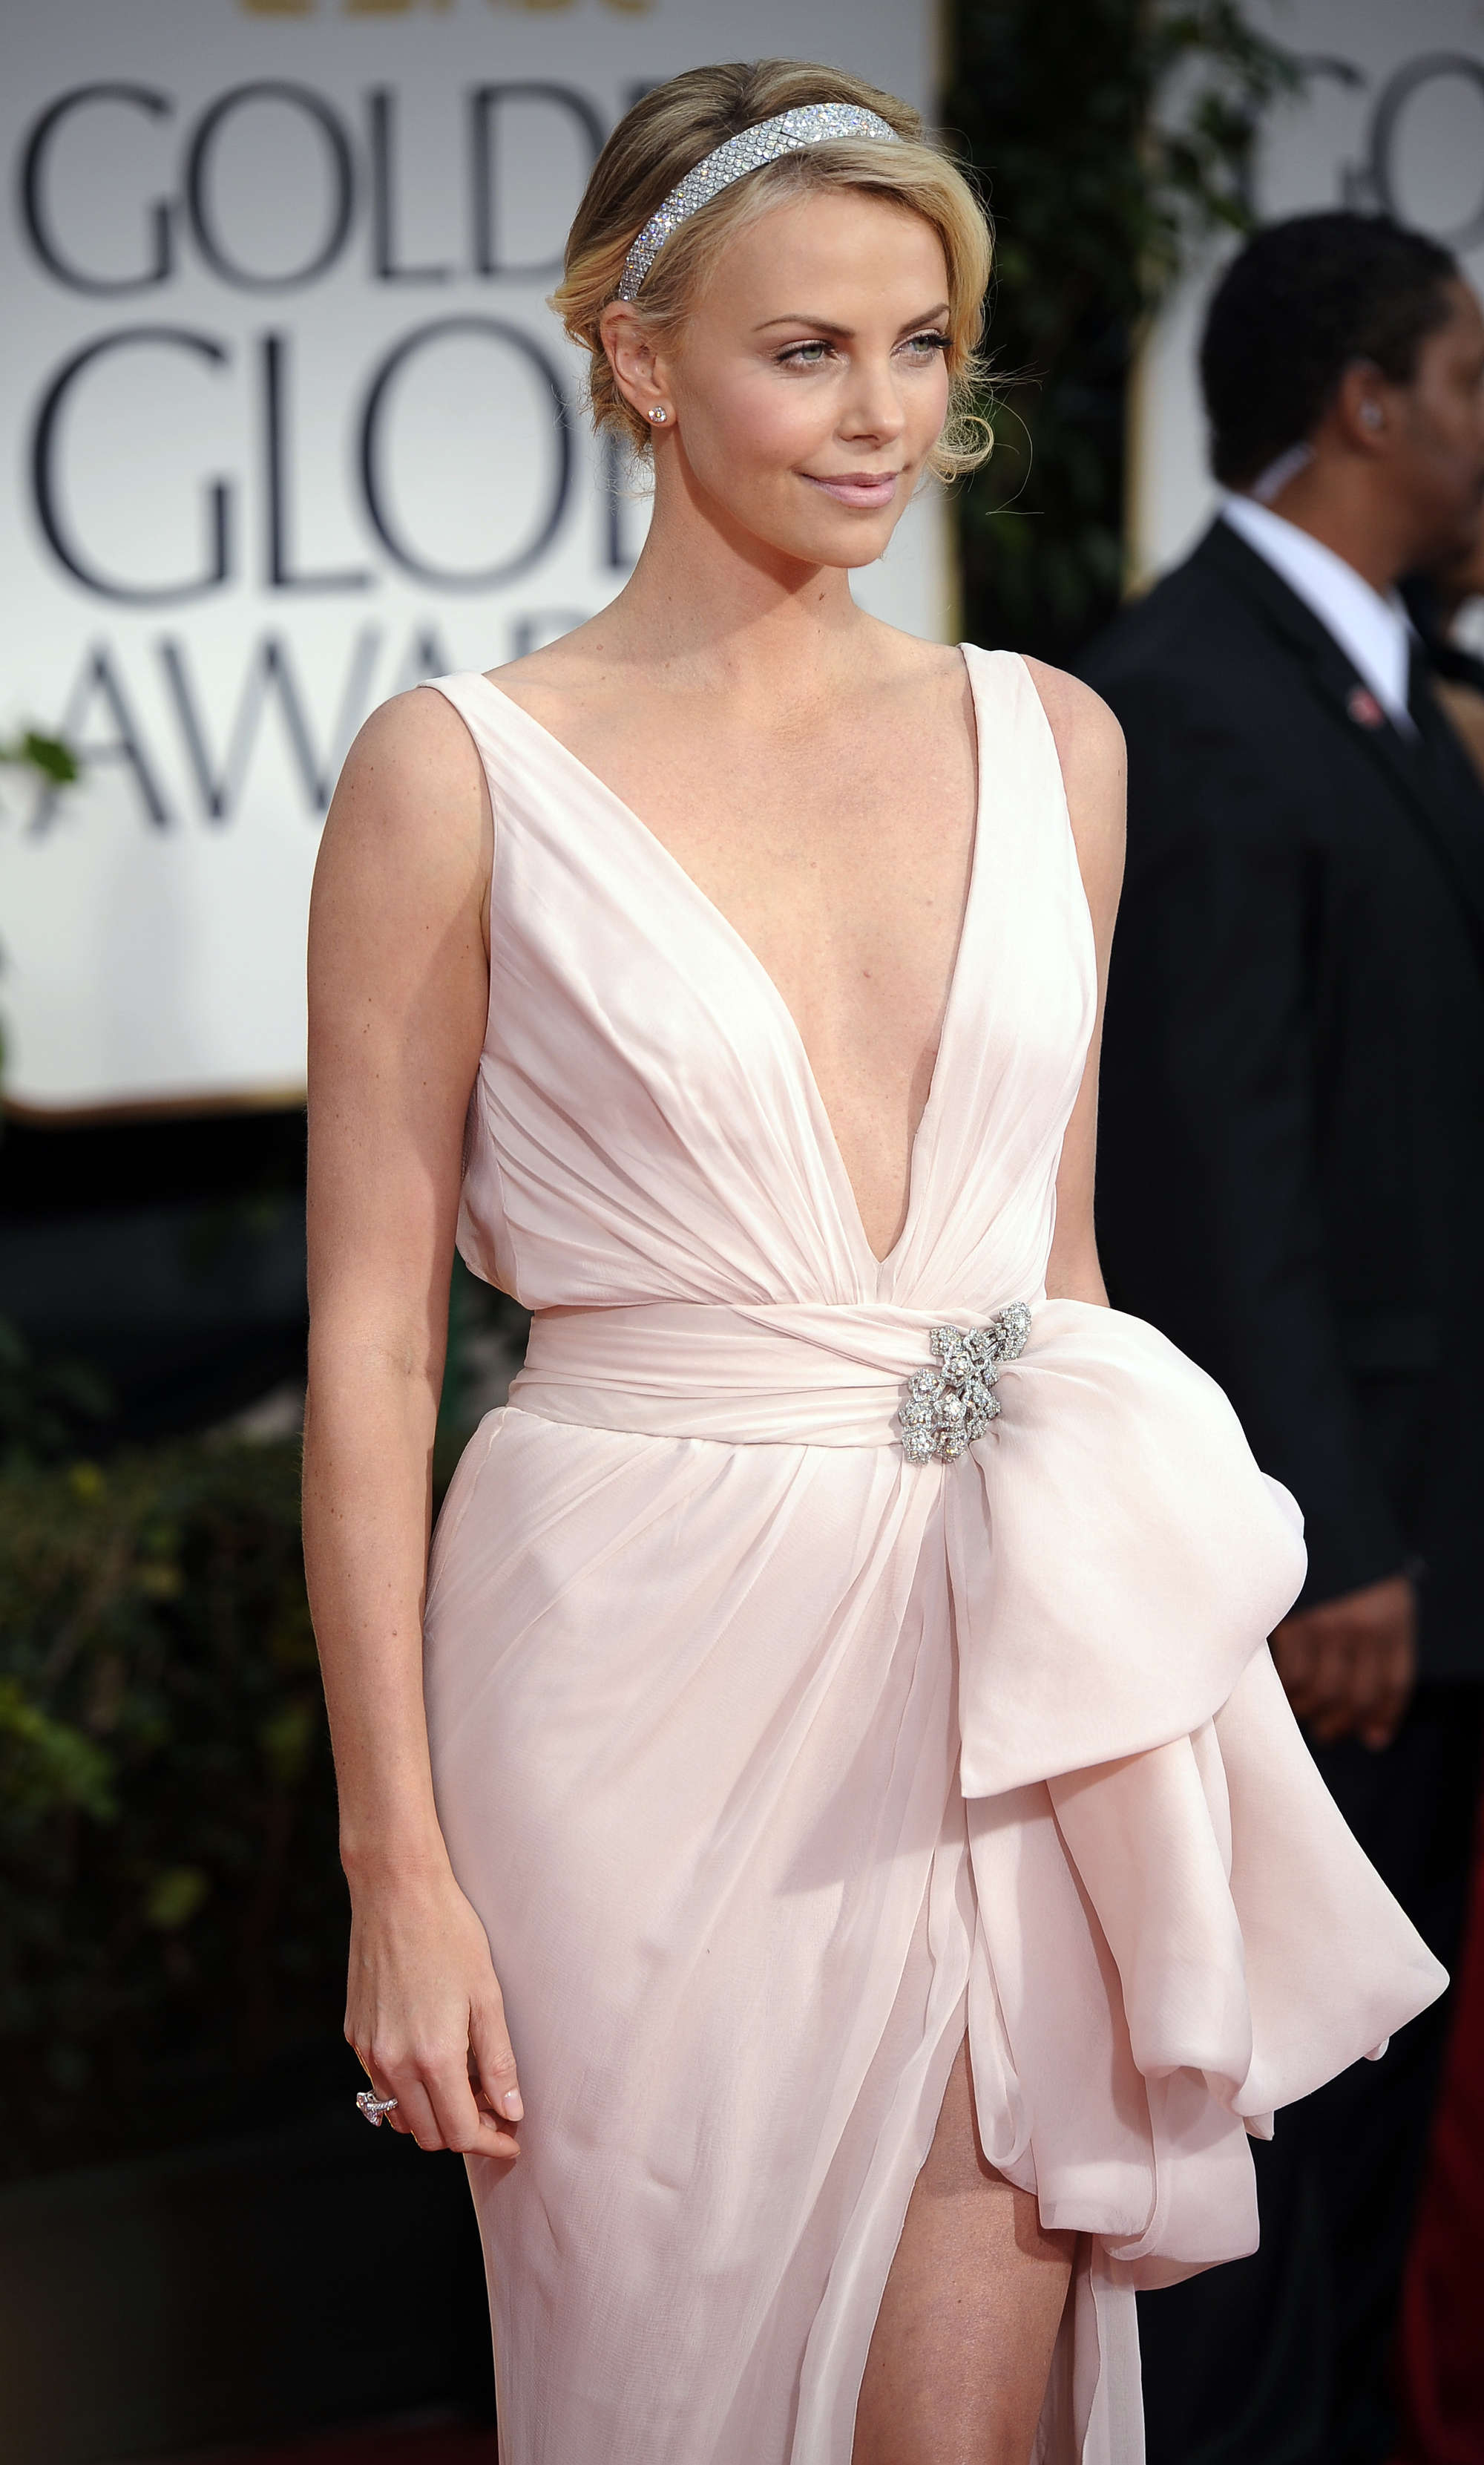 cb29d5c4682d0 Charlize Theron cleavy at 69th Annual Golden Globe Awards in LA-01 ...